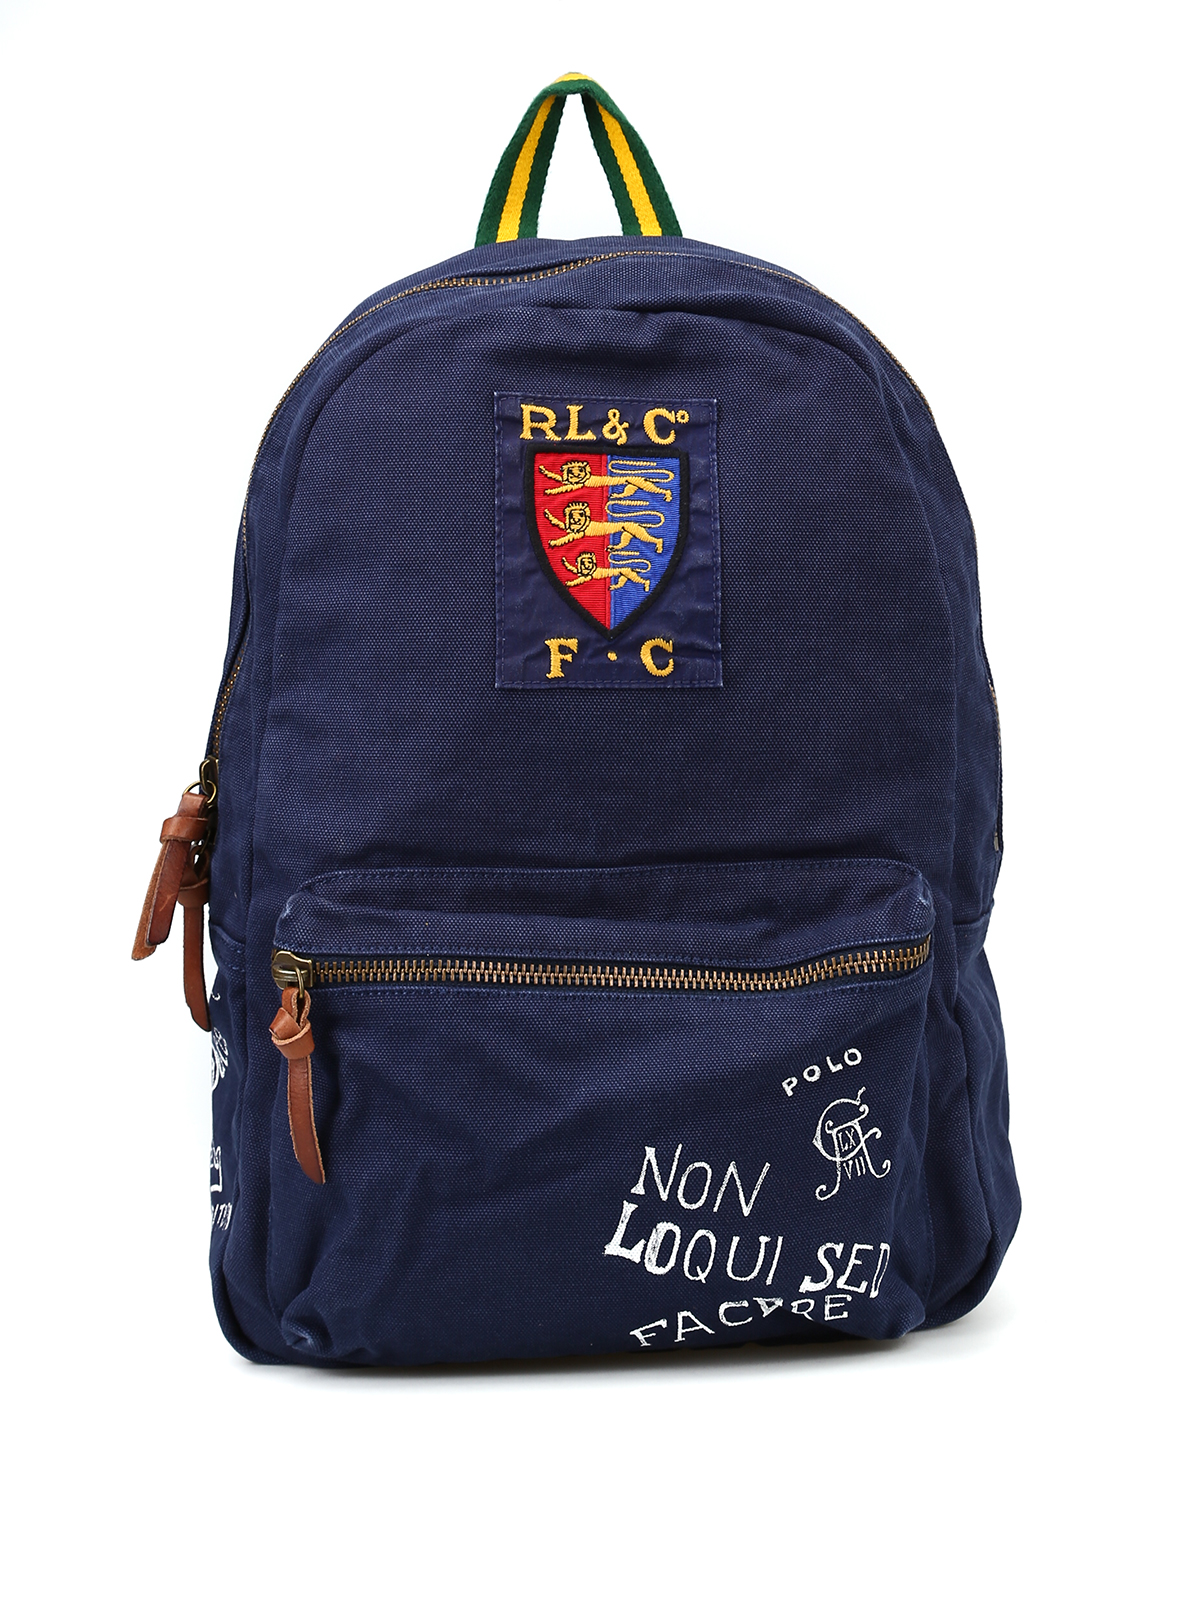 ba1ae881f86 POLO RALPH LAUREN  backpacks - Printed blue canvas backpack with patch